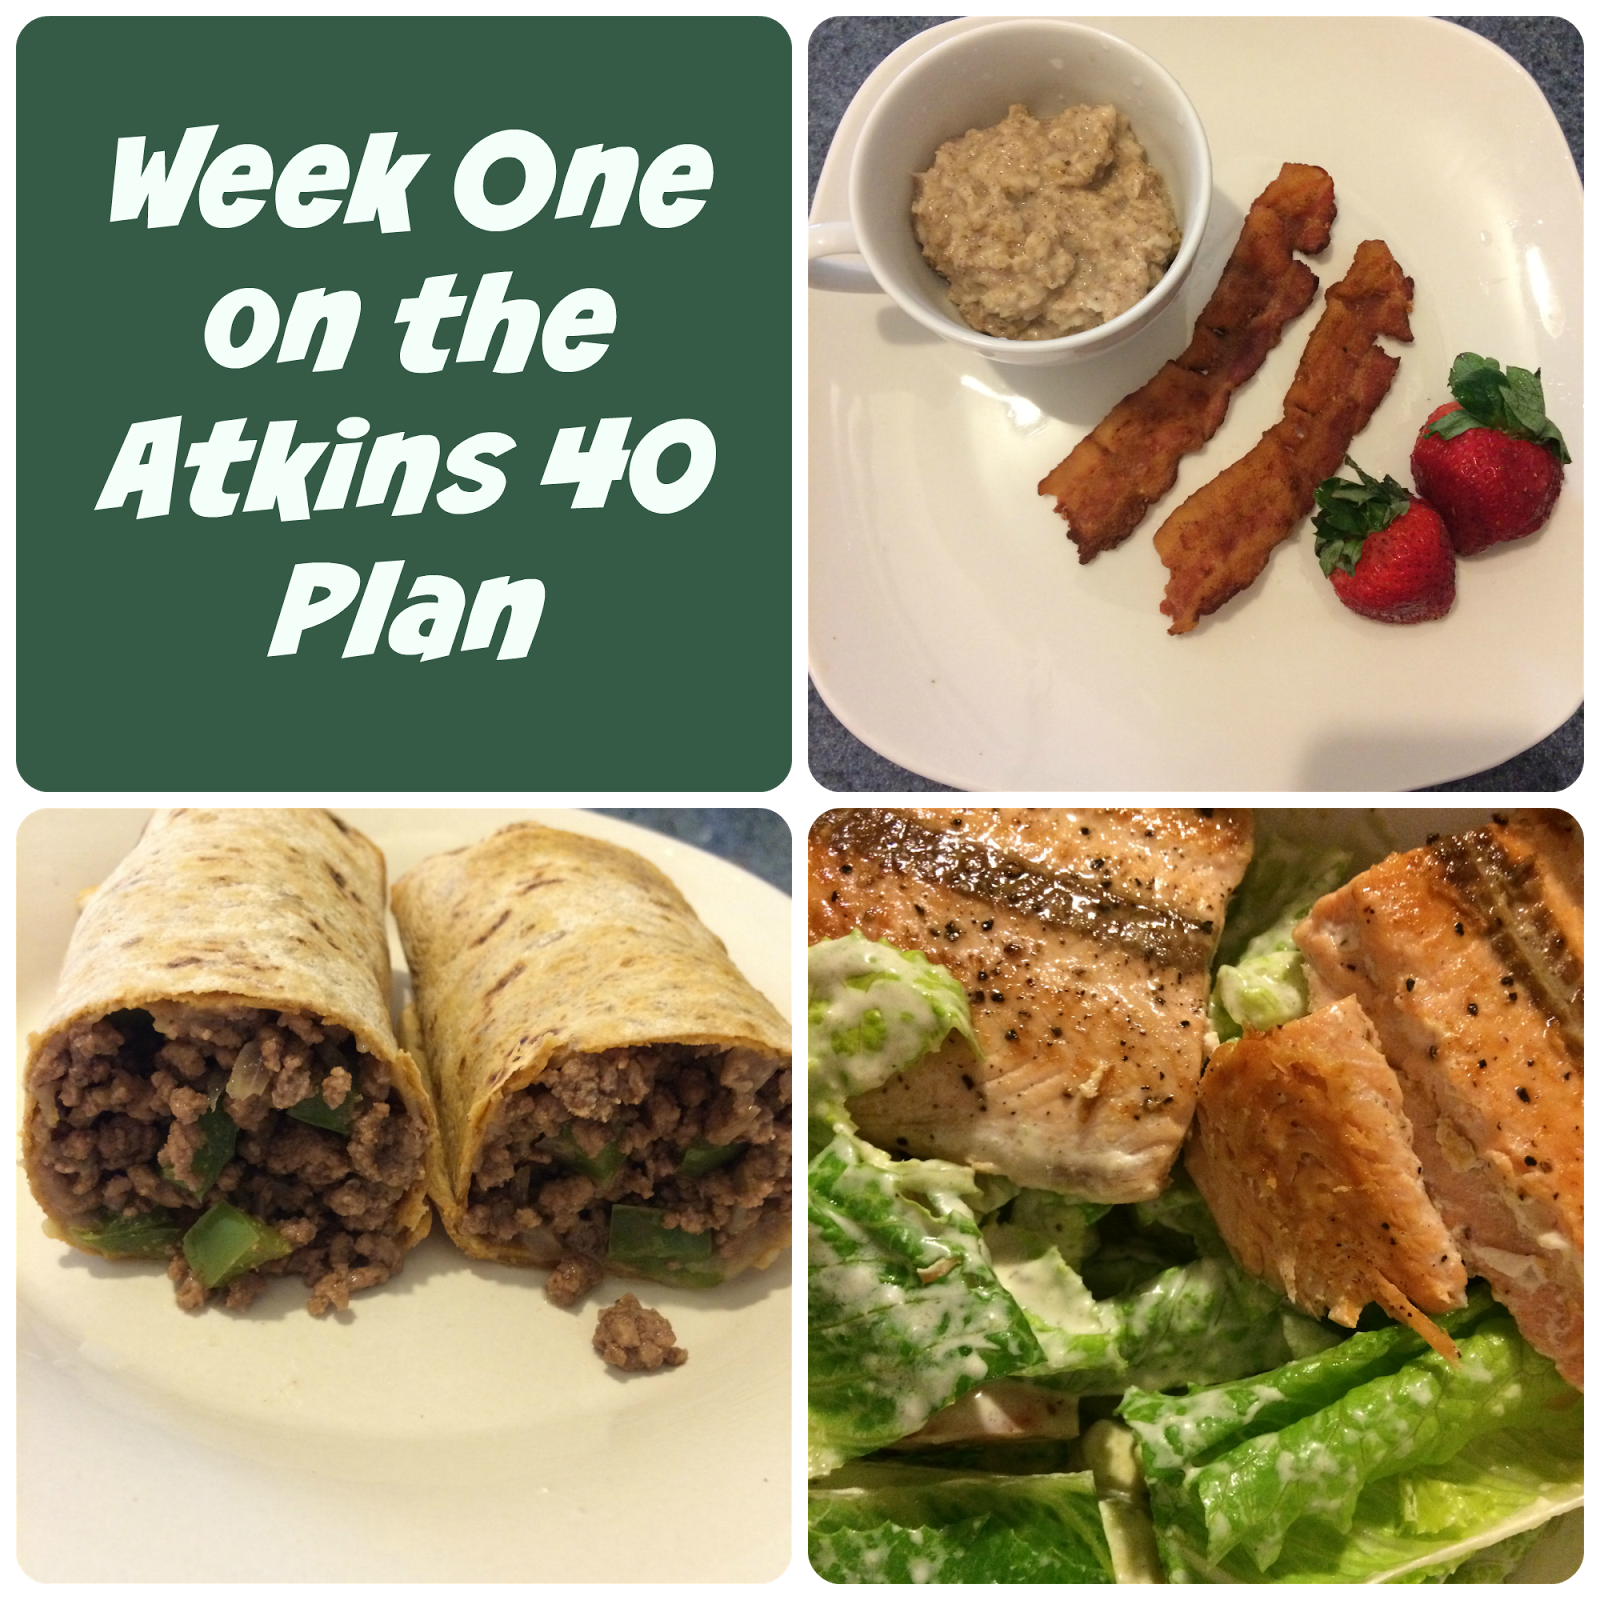 I Have Been On The Atkins 40 Plan For About A Week Now And I Have To Say That I Really Love It When I Fi Atkins 40 Meal Plan Atkins